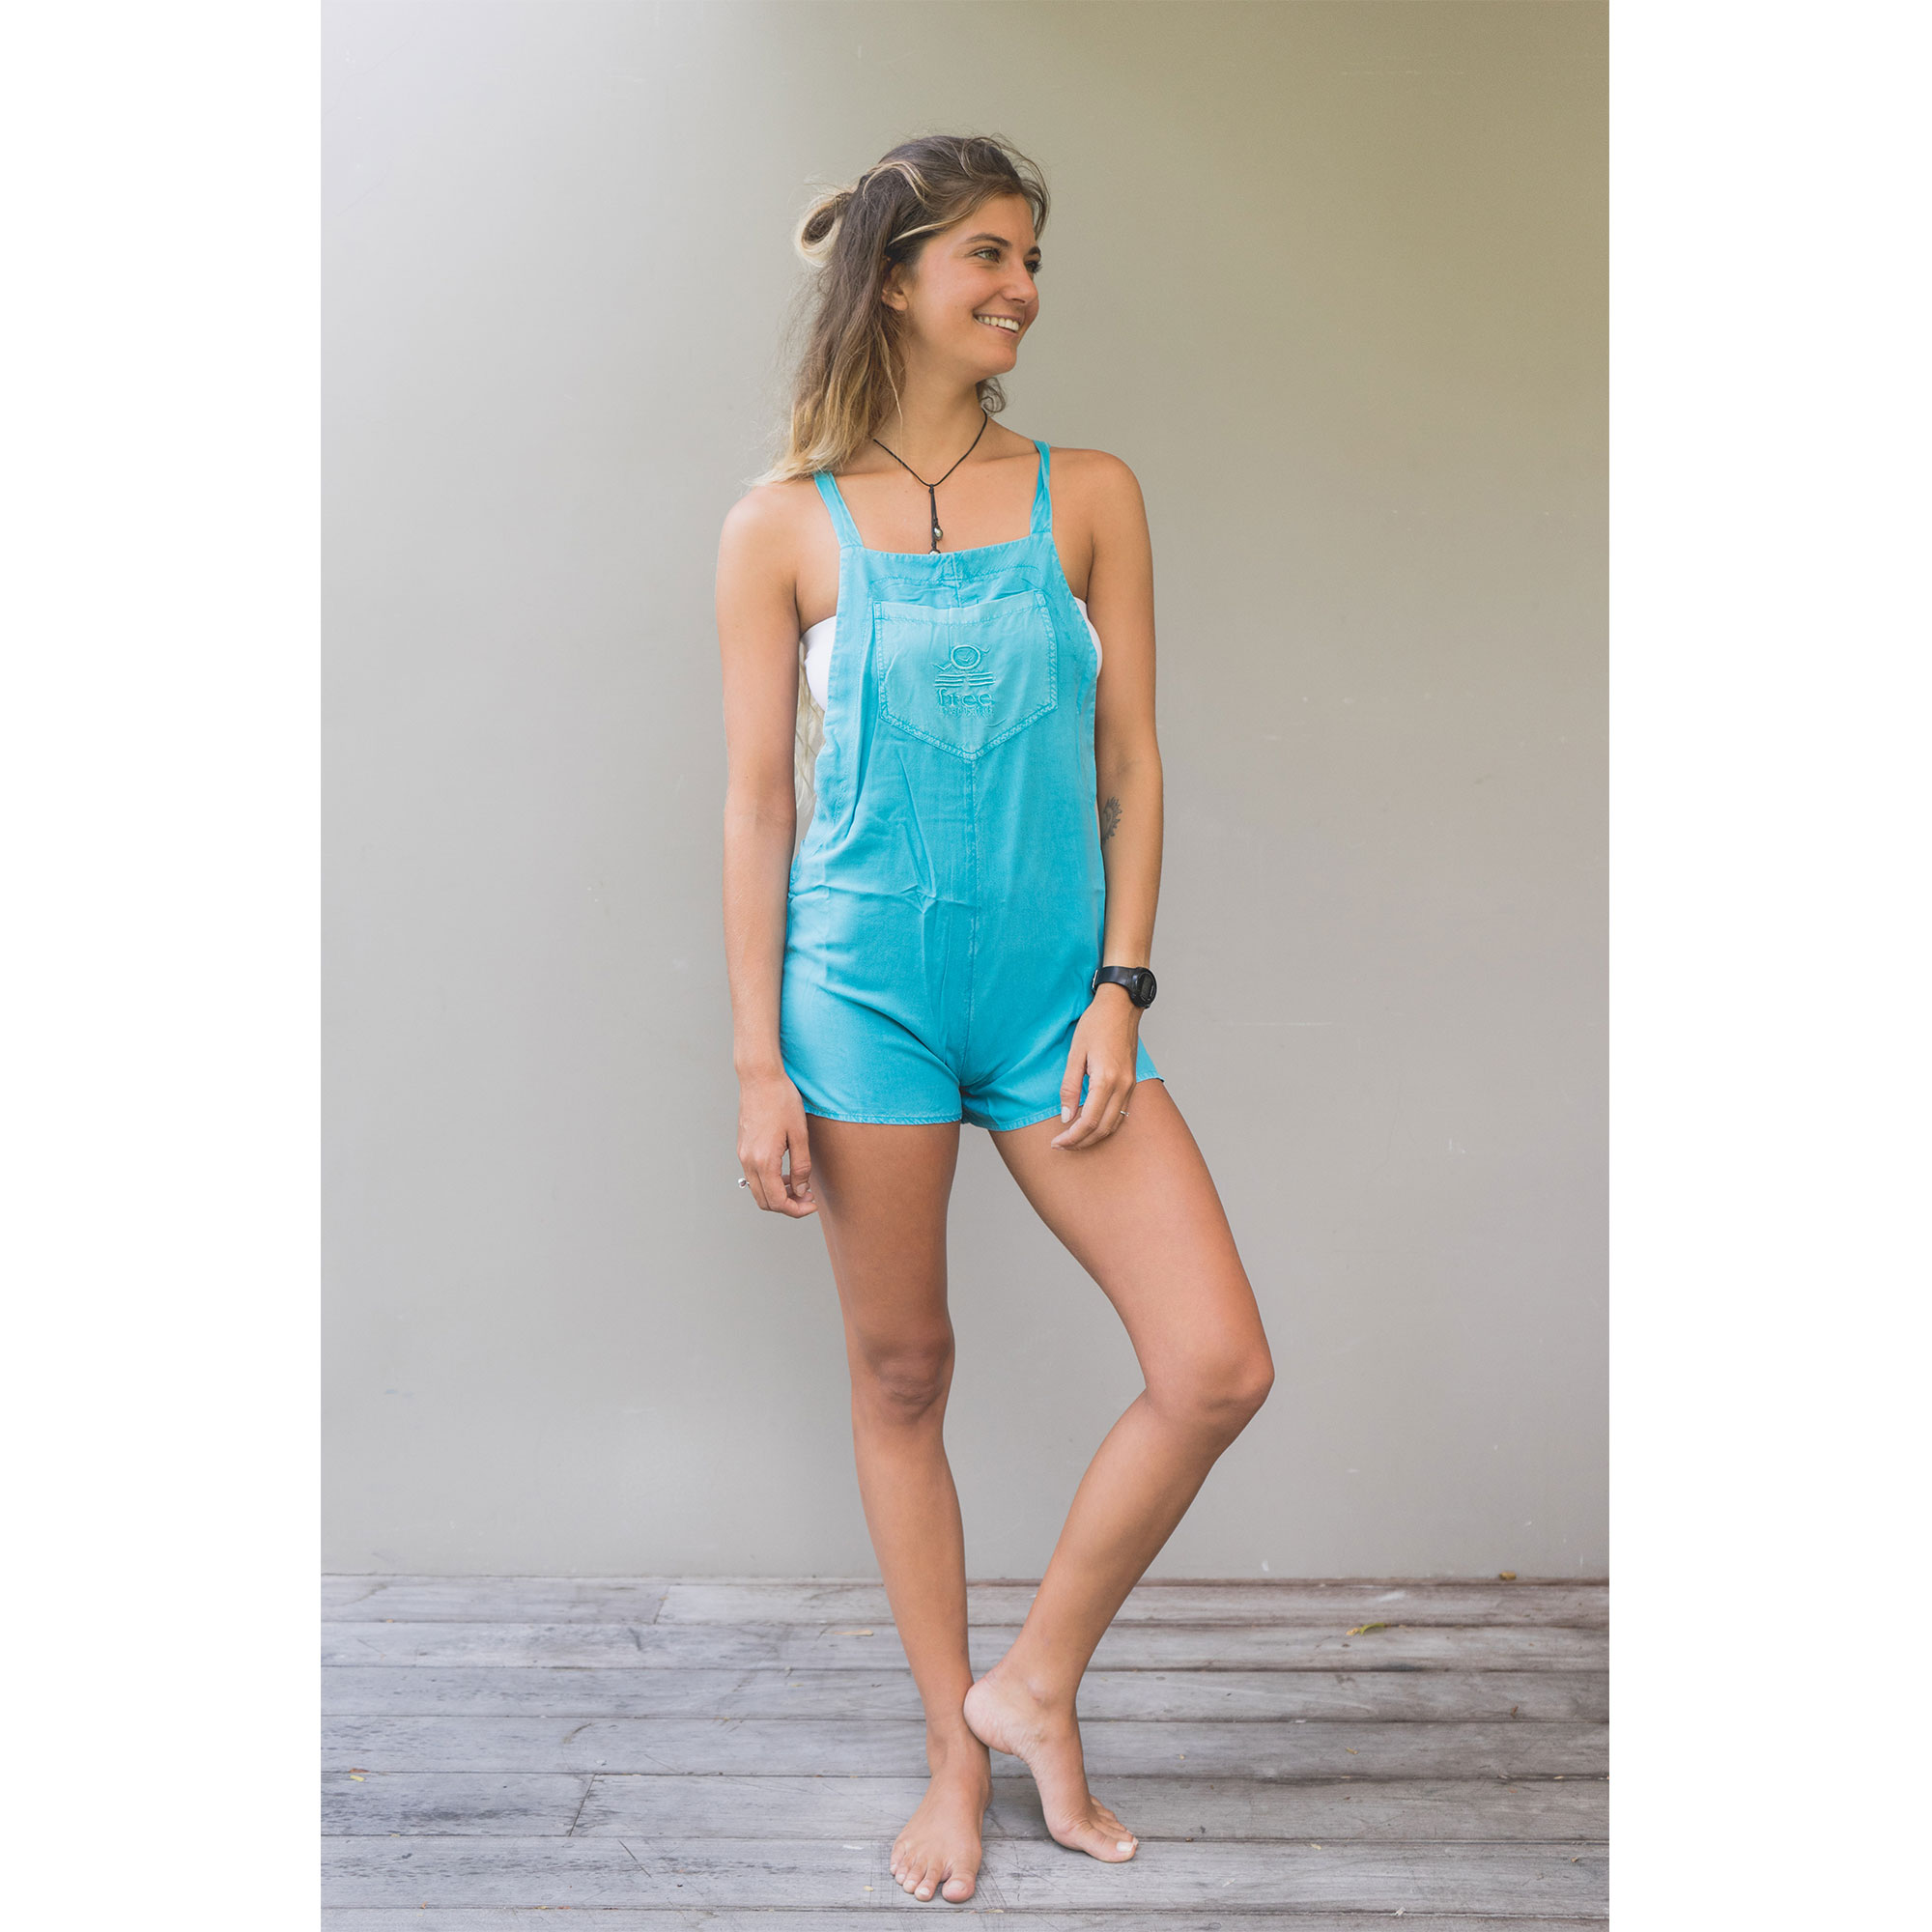 Creative  Malandrino String Back Jumpsuit In Appletini In Green Turquoise